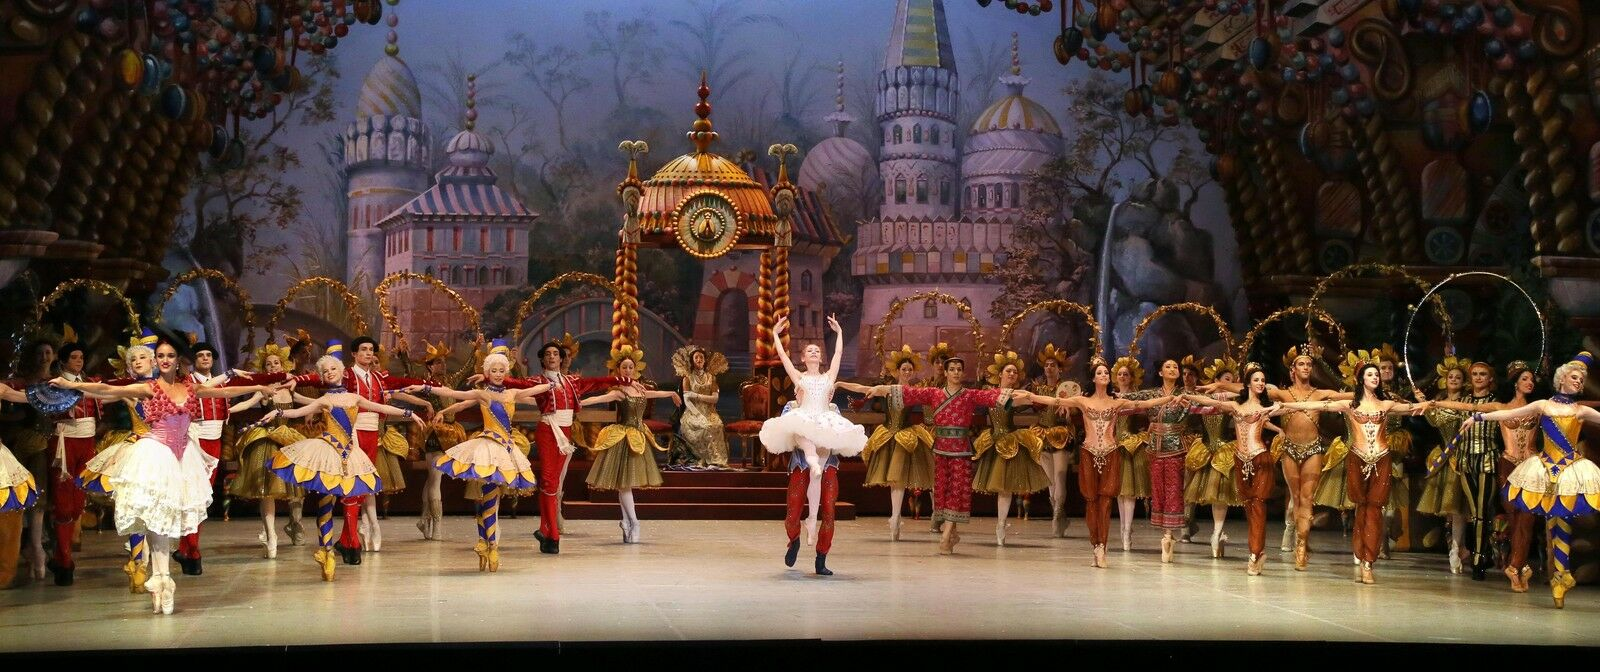 The Nutcracker West Palm Beach